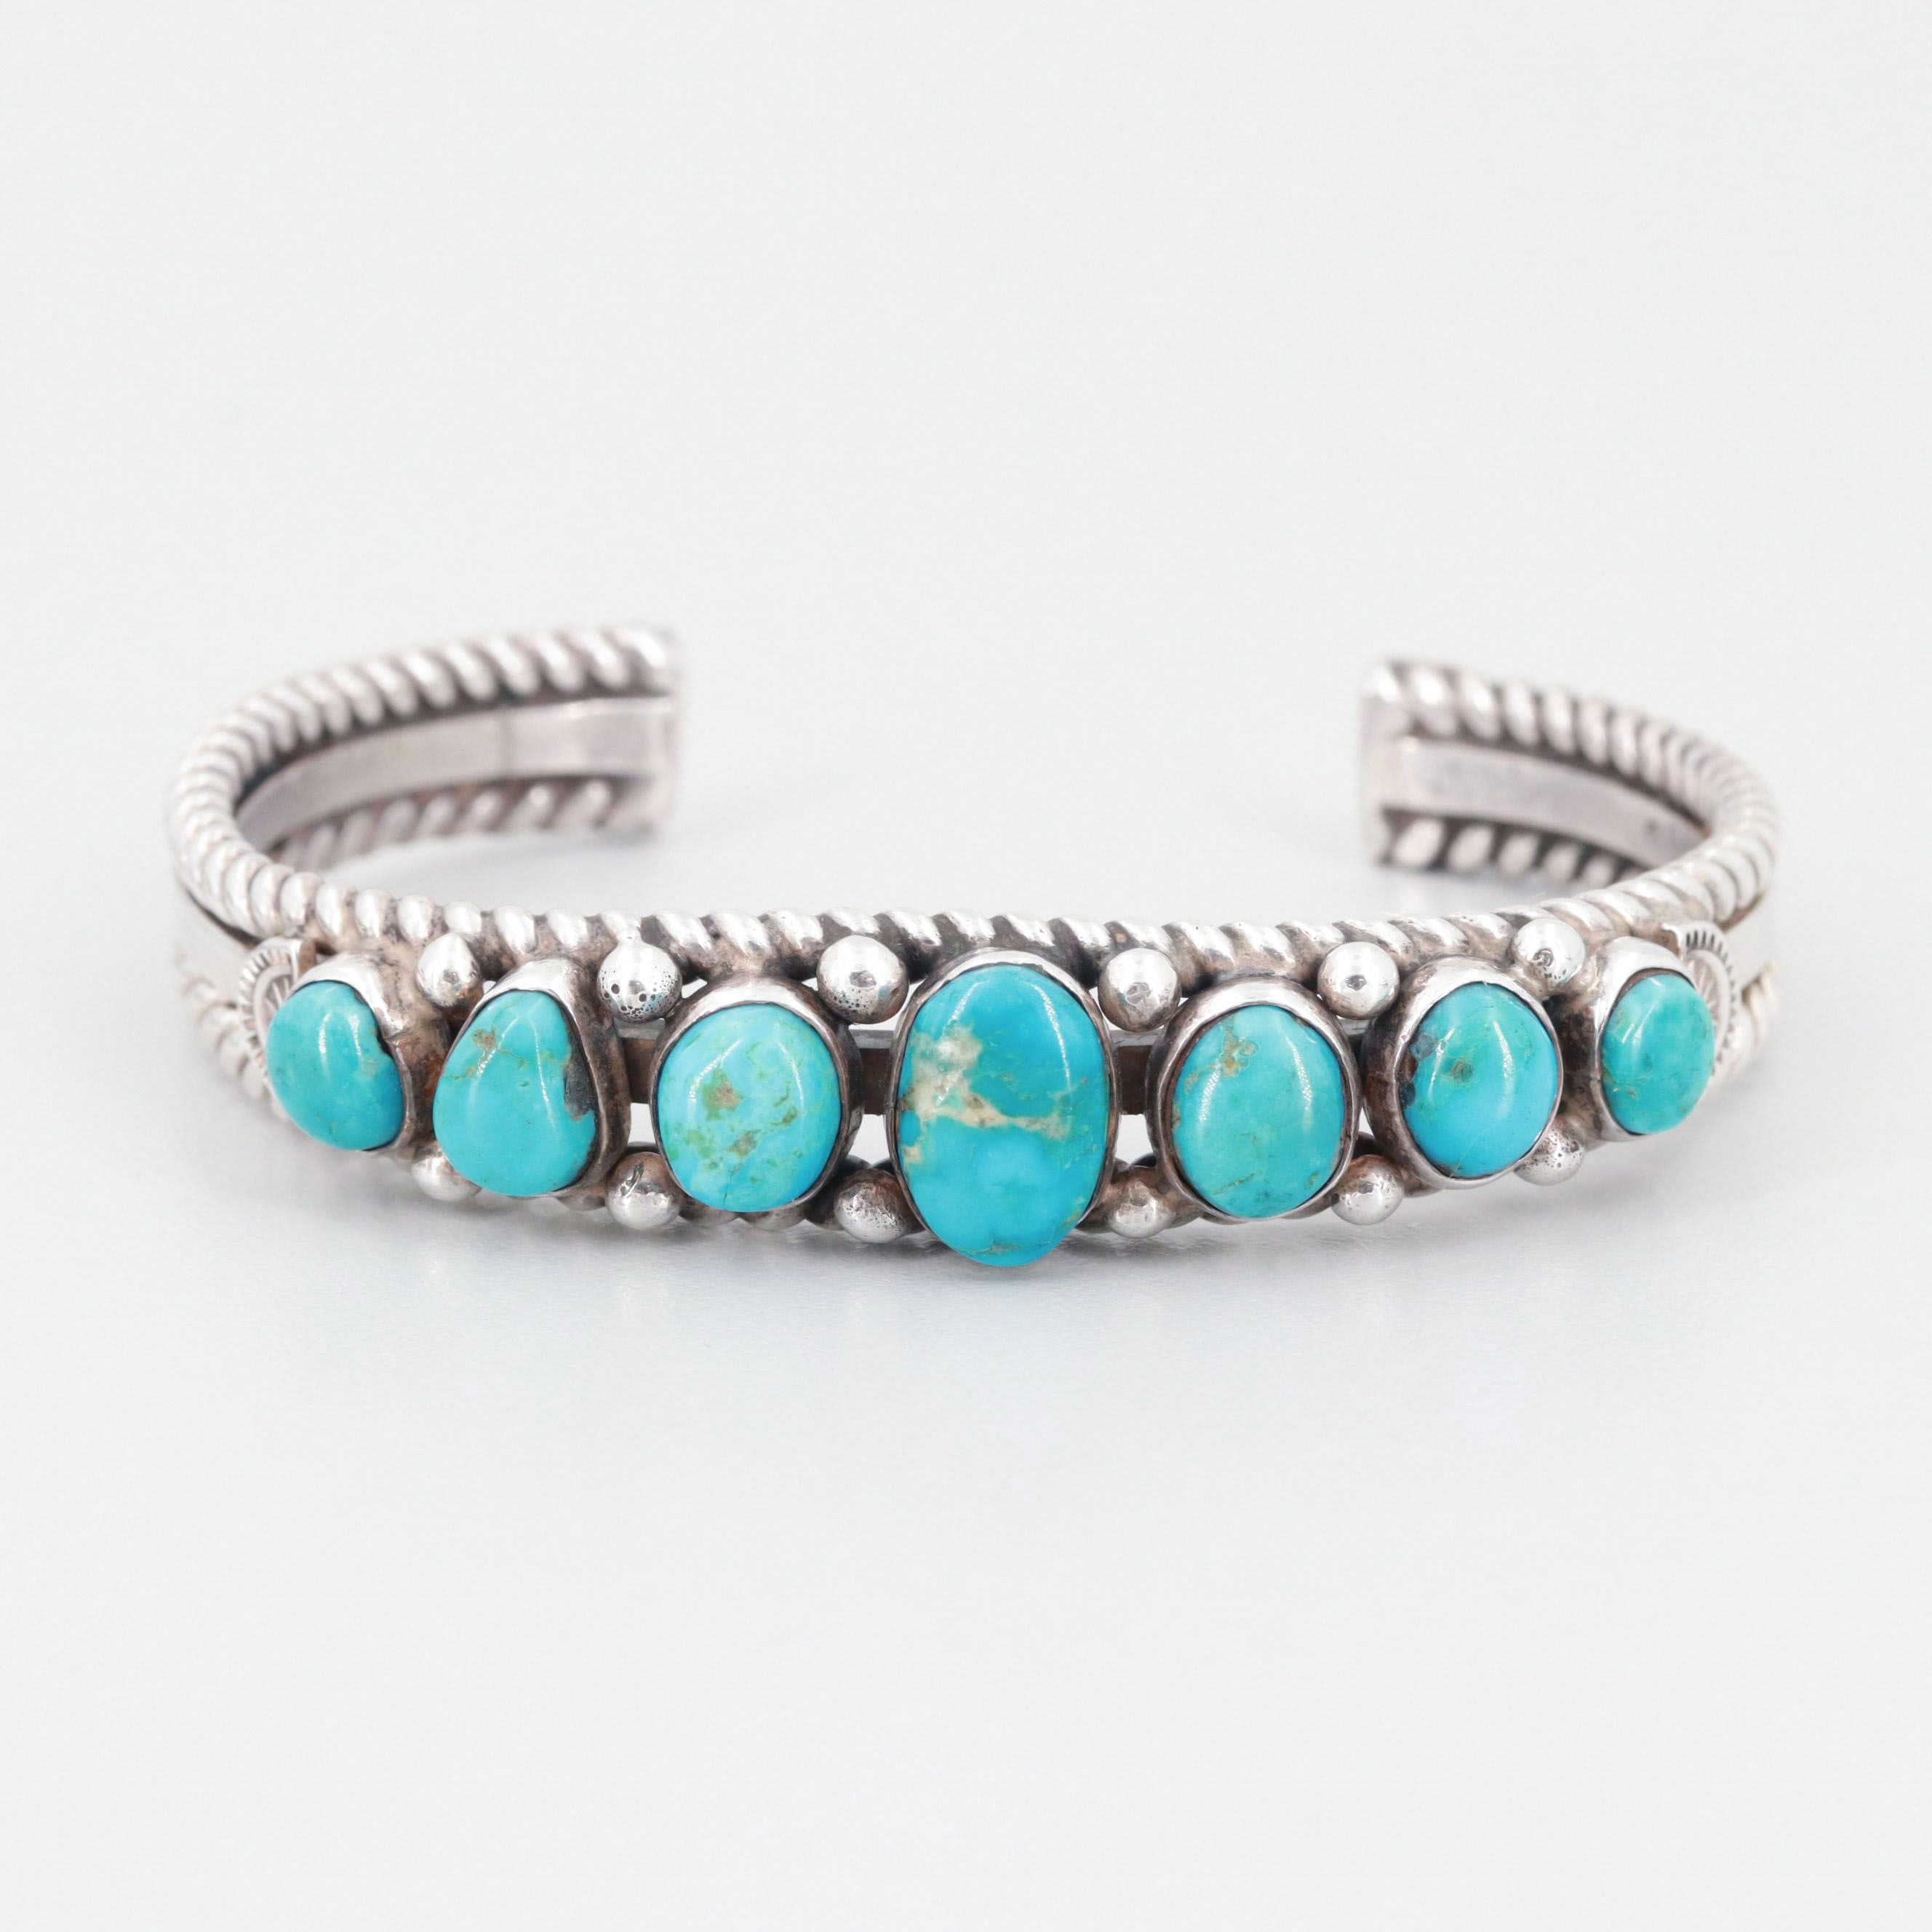 Albert Payton Navajo Diné Sterling Silver and Turquoise Cuff Bracelet